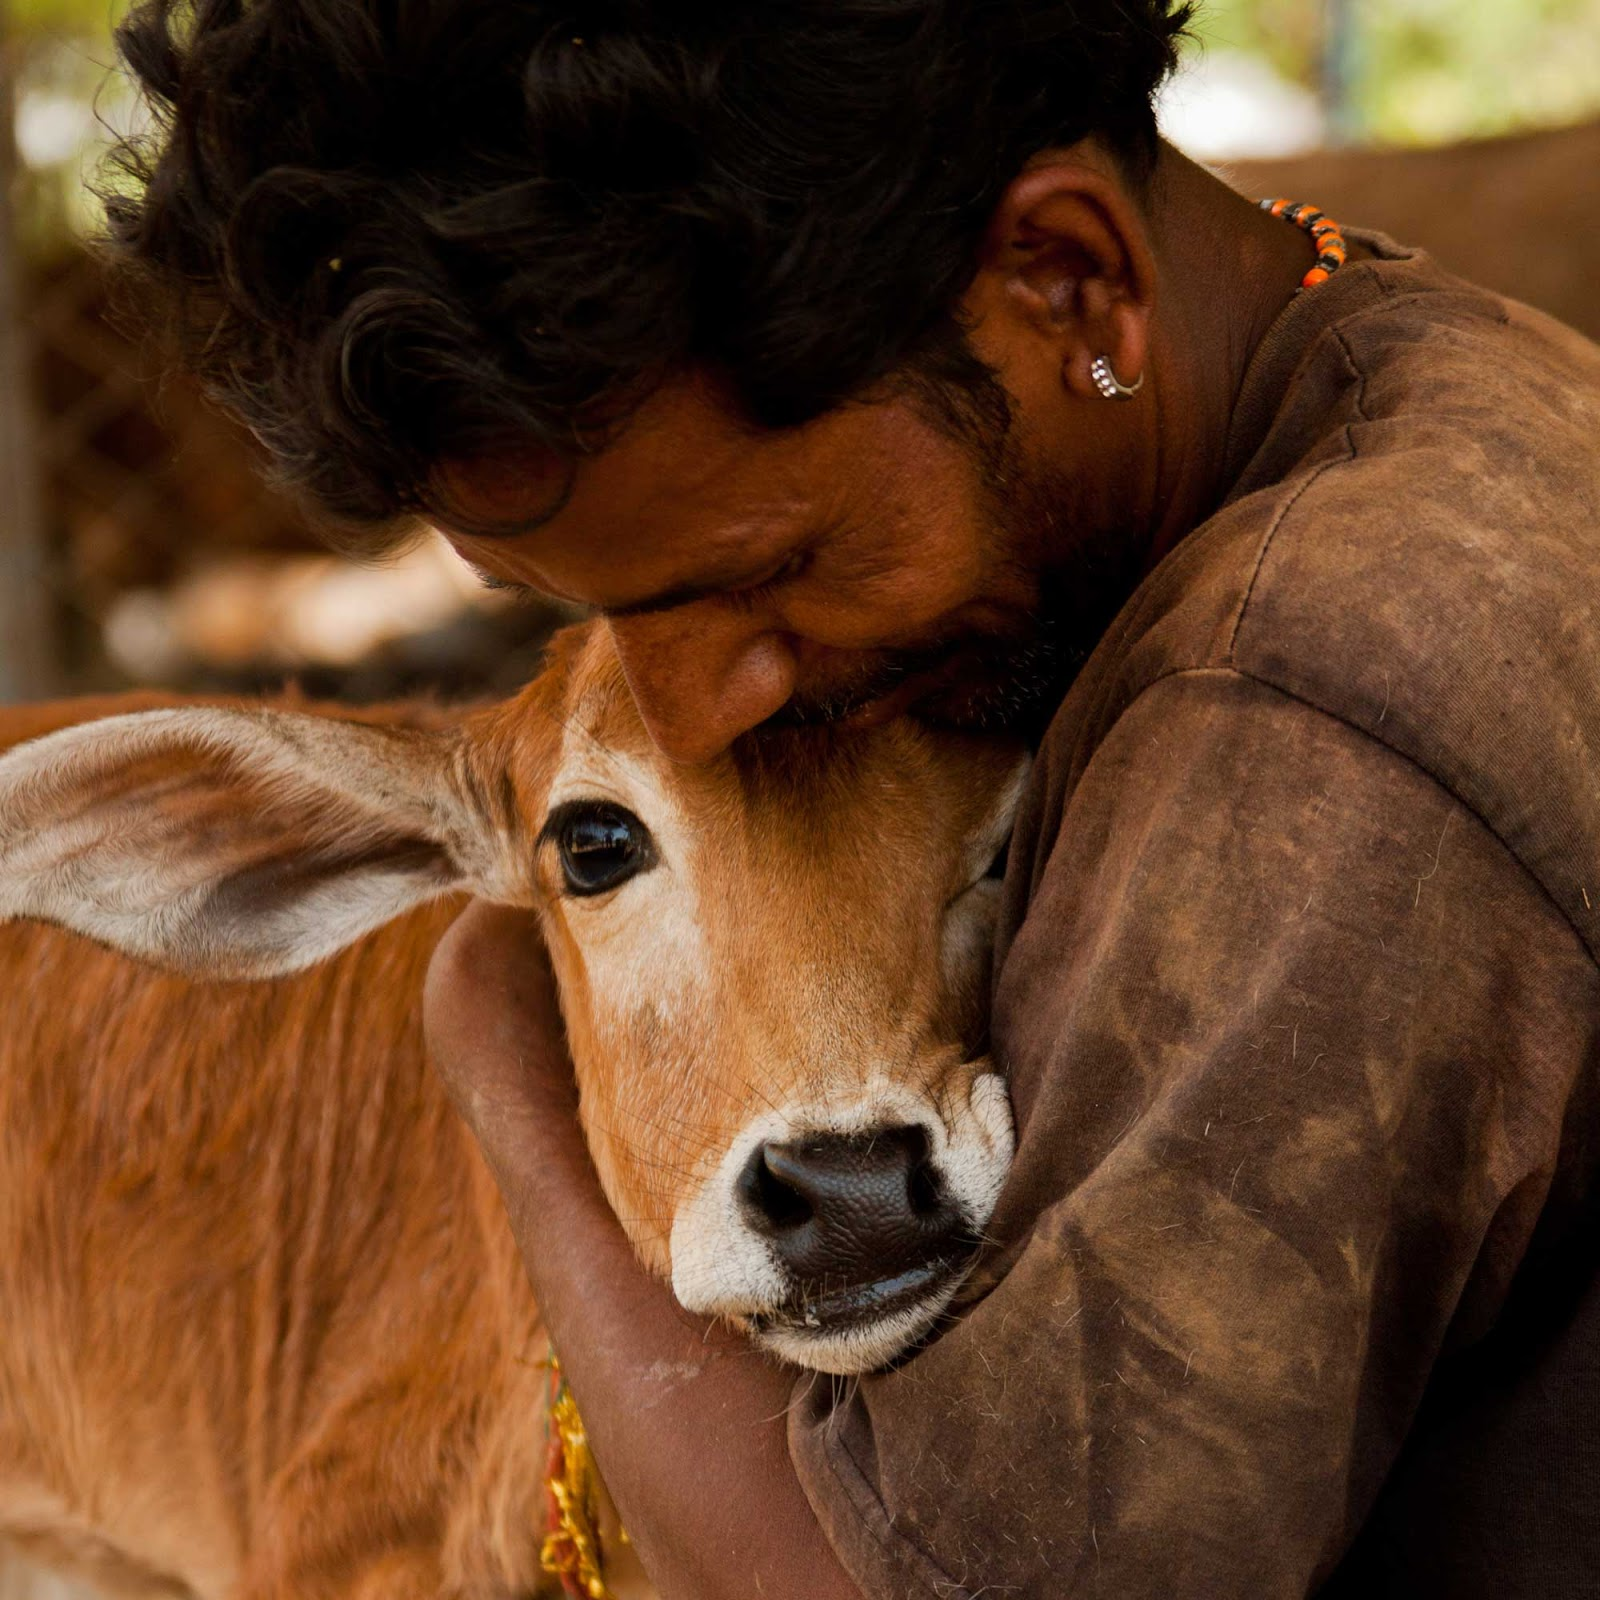 compassion for all living creatures is Fundamental Duty of Indian citizens